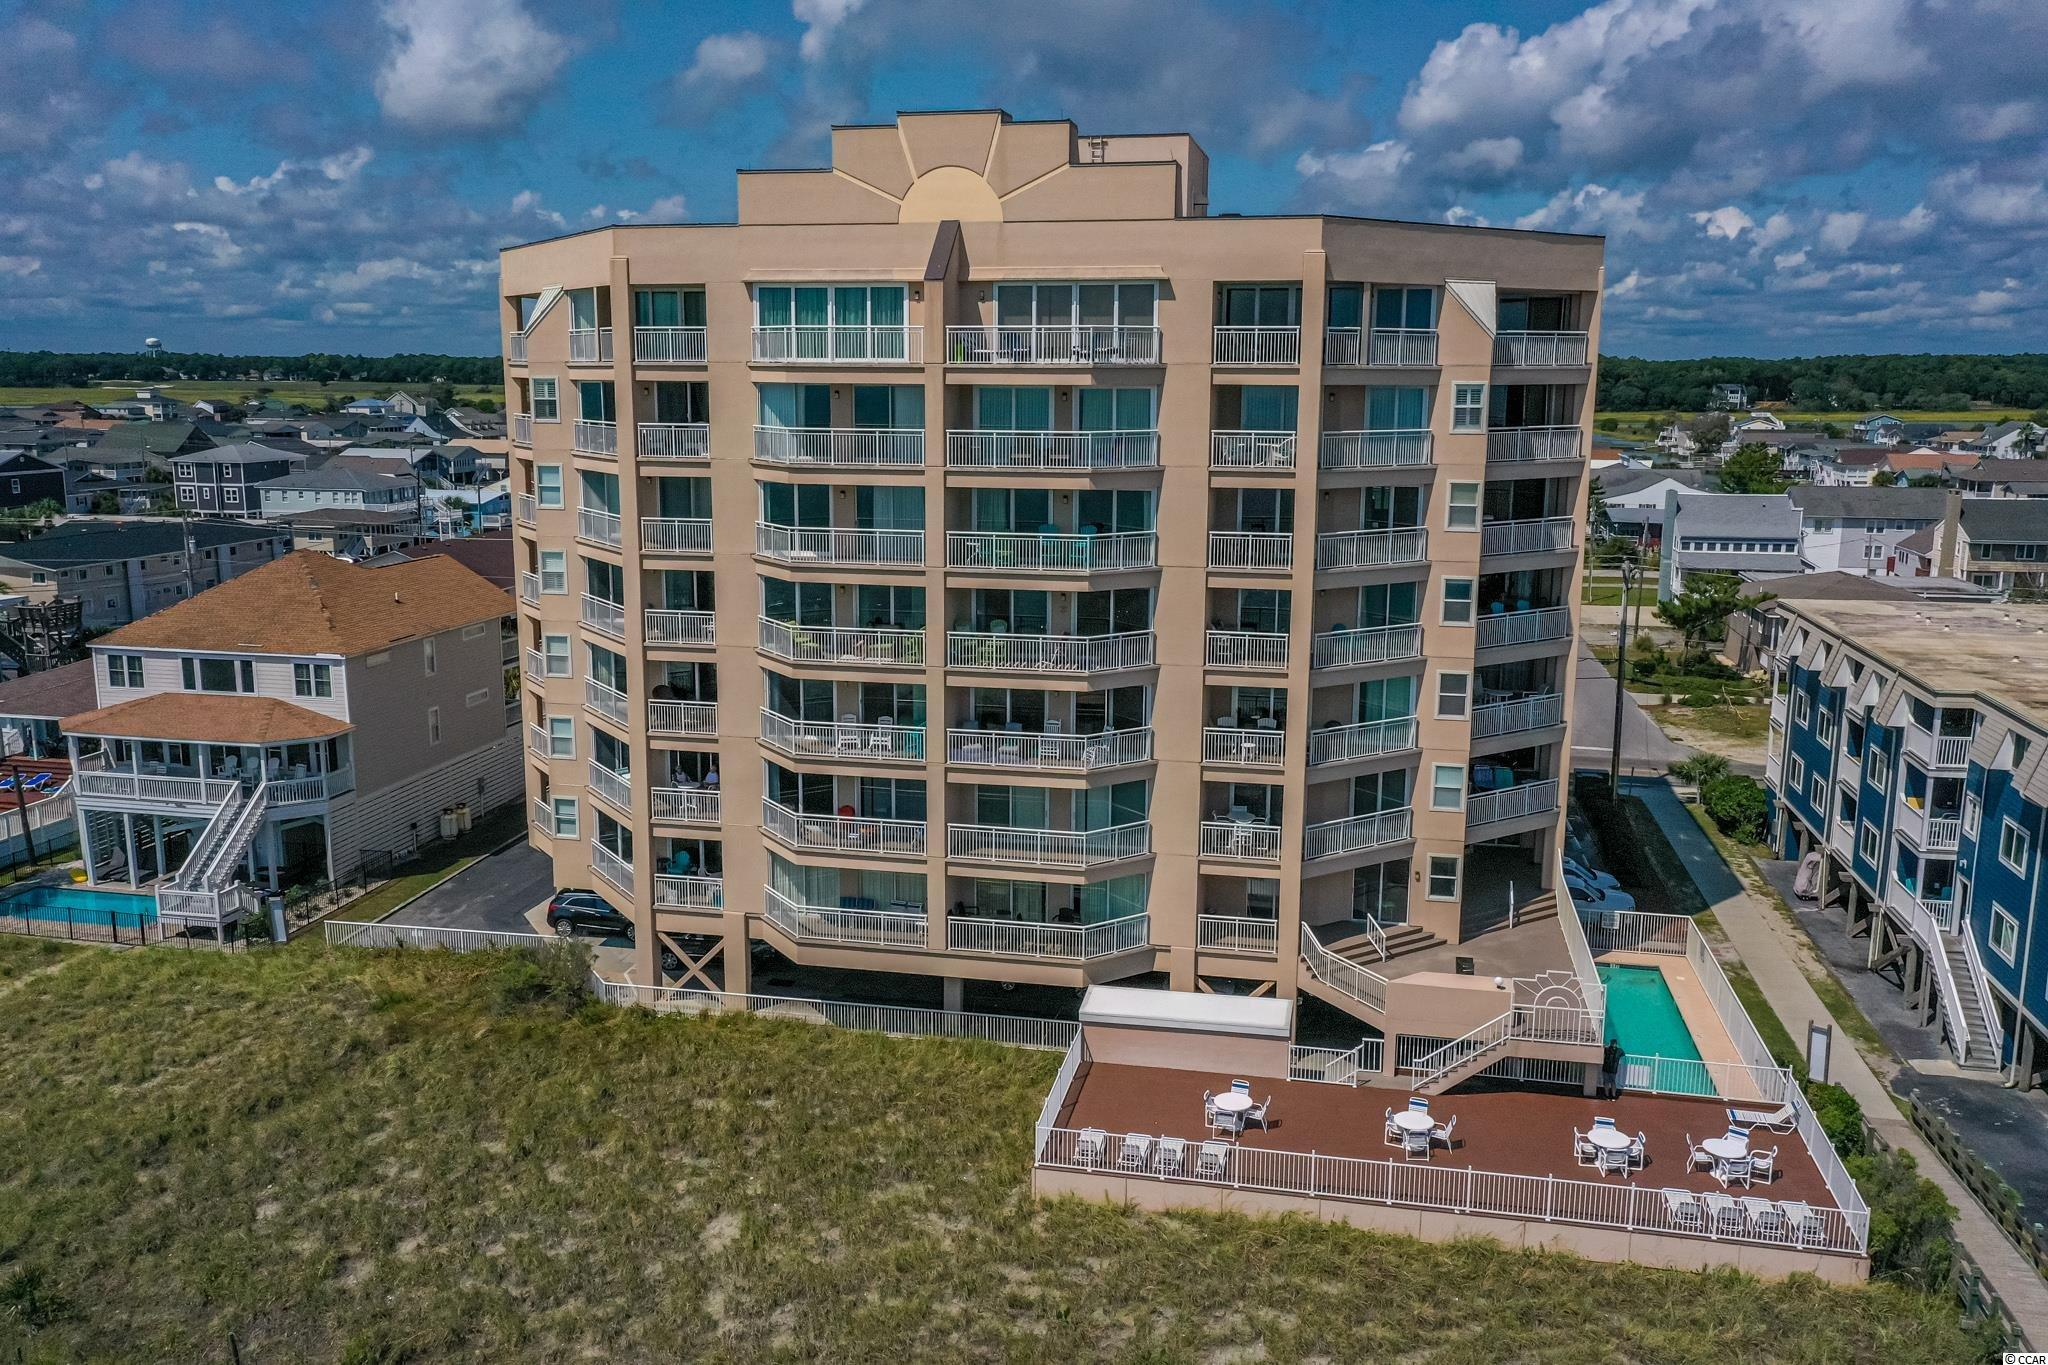 Gorgeous two bedroom, two bath, oceanfront condo at Hyperion Towers in North Myrtle Beach. The towers offer underneath parking, secure key pad entrance, elevators, pool, deck area, grilling area, fitness center, lounge, and private beach access. Tile flooring throughout, new paint, updated bathroom vanities,  and updated furniture for a more beachy feel. Kitchen boasts white cabinets, granite counters, backsplash, updated lighting, stainless steel appliances, and breakfast bar with wainscoting. The primary suite has beautiful ocean and pier views from two picture windows, access to the broad private balcony through slider, large closet, and a private bathroom with double vanity, new raised toilet, and shower tub combo. The spacious dining room, living room combo has a rustic table and chandelier, ceiling fan, slider access to the balcony, and grand views of the beach. Sitting on the balcony you will get breath taking 180 degree views of the beach, pier, and also the sunrise in the morning. Other features include full size washer and dryer, newer HVAC (2019), newer roof (2019), attached storage, updated bathrooms, new exterior building paint, and much more. Square footage is approximate and not guaranteed, buyer is responsible for verification.